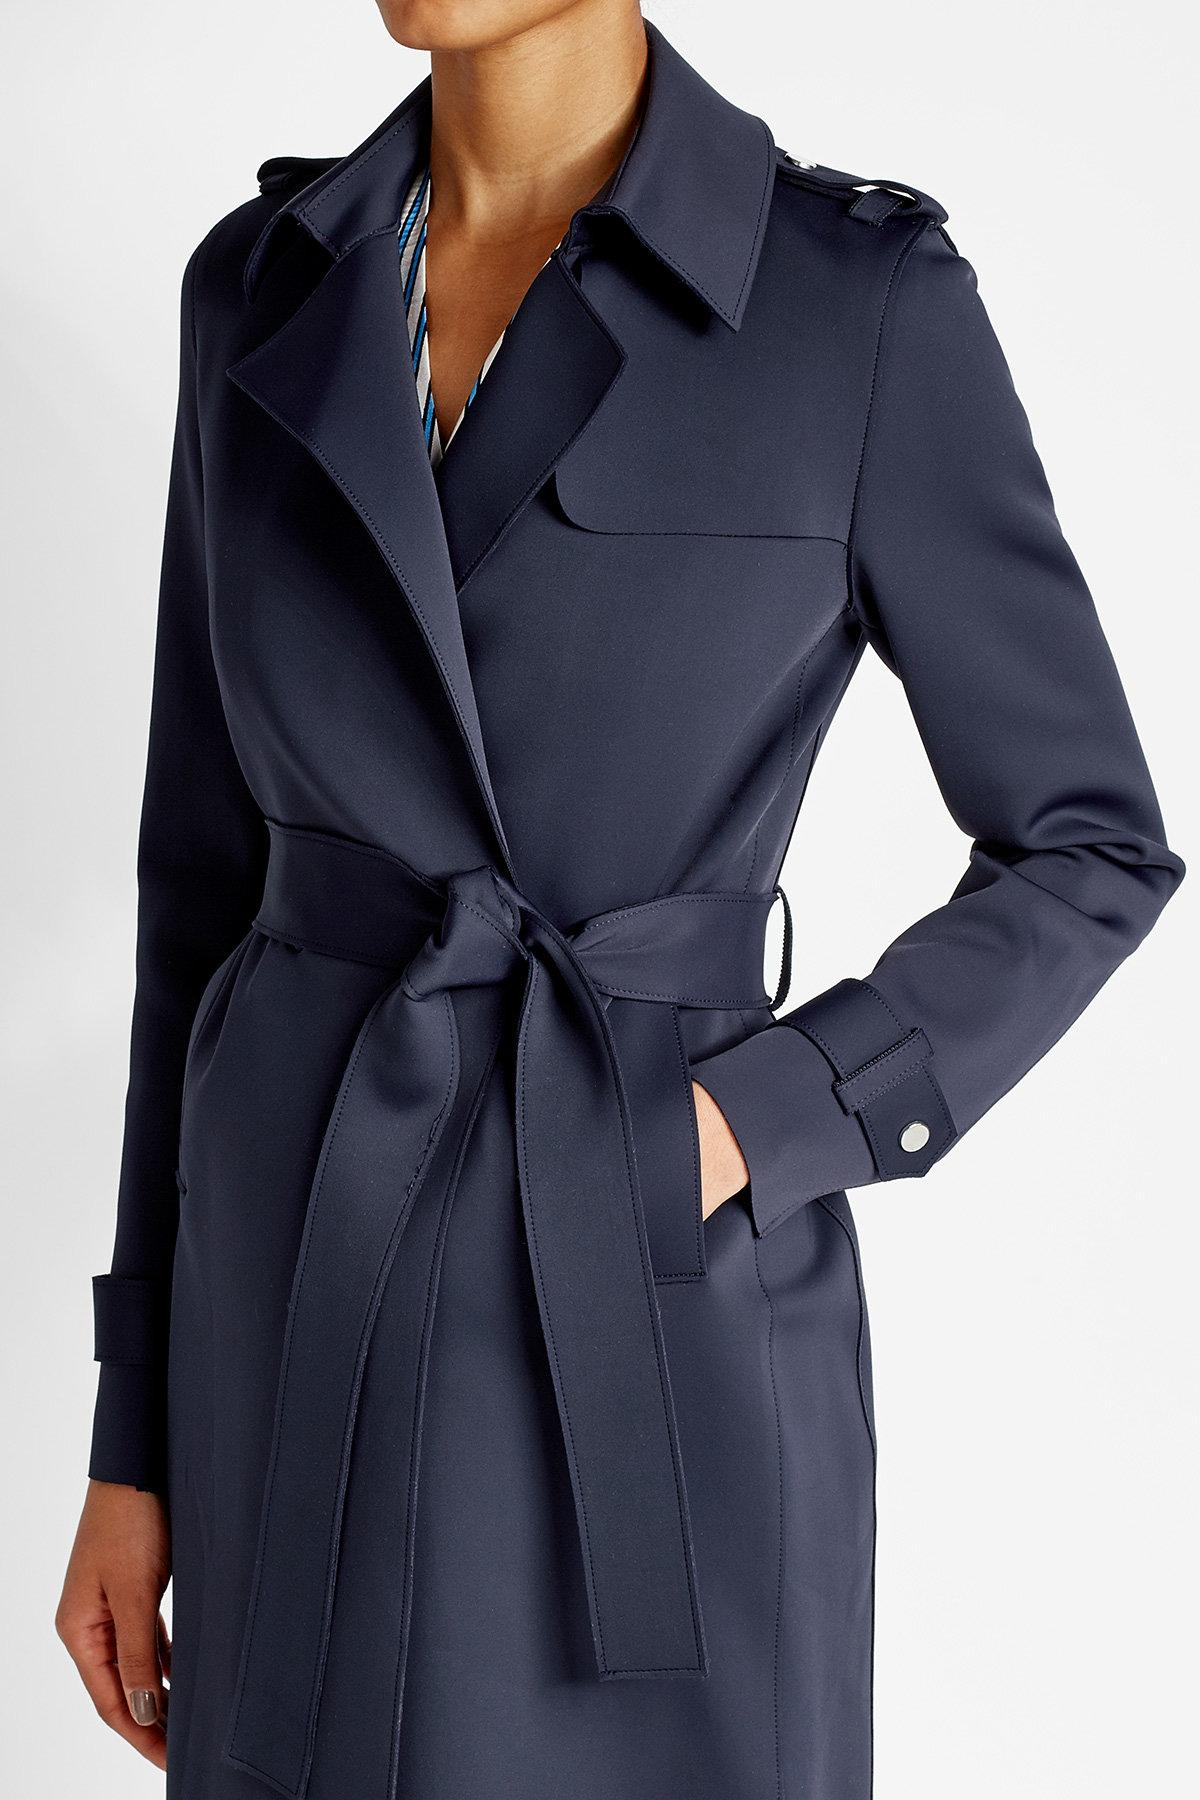 lyst harris wharf london trench coat in blue. Black Bedroom Furniture Sets. Home Design Ideas